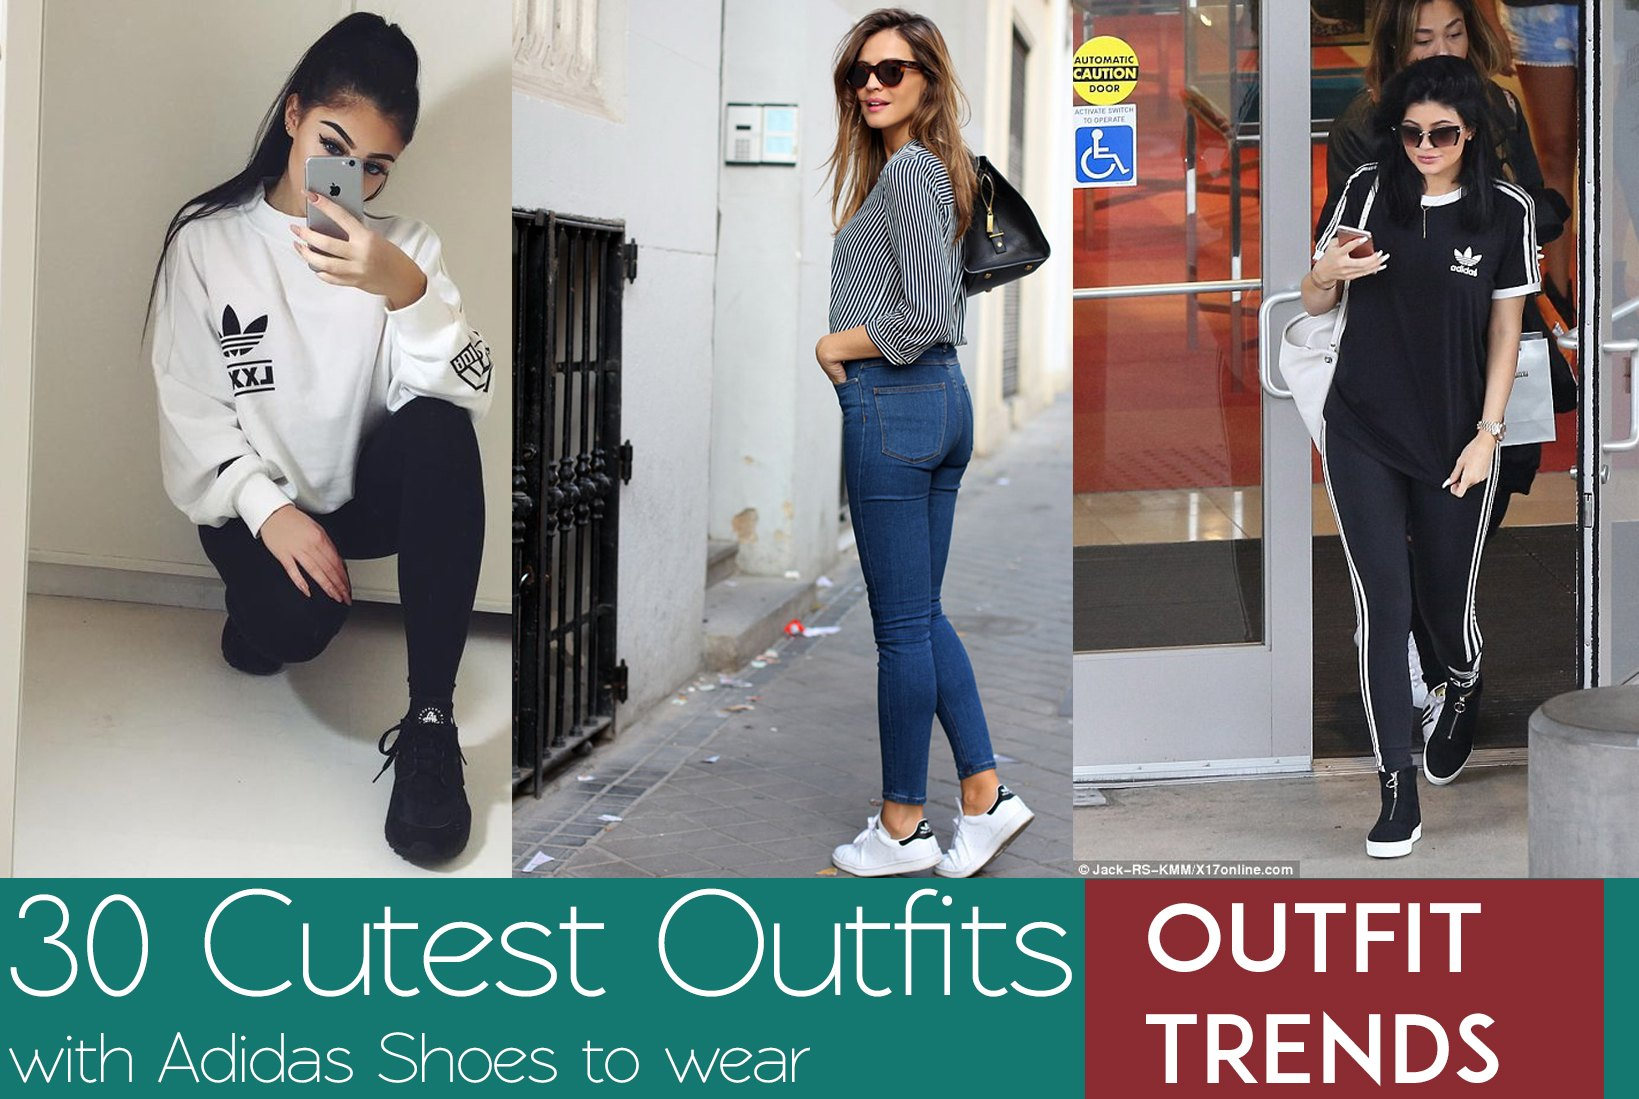 featured-image-for-outfit-trends